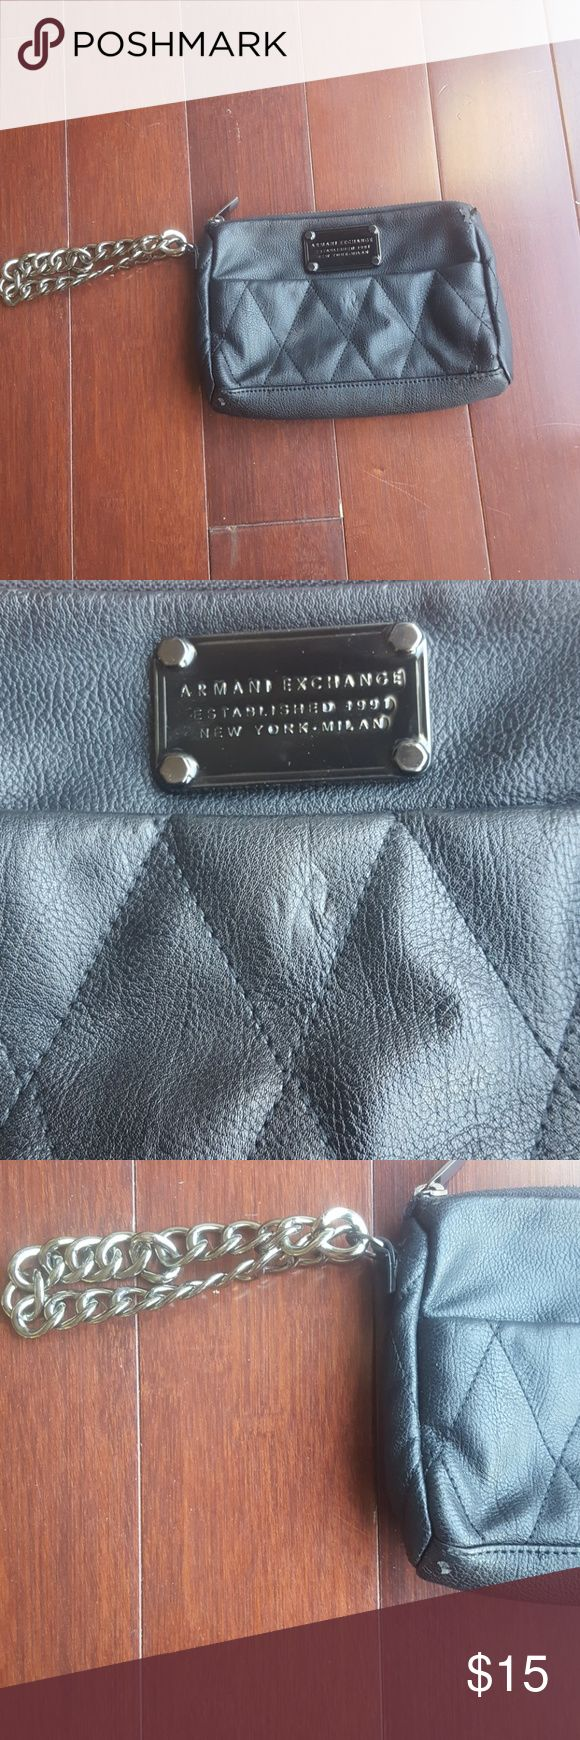 Armani Exchange wristlet Black wristlet with gun metal look chain. the corners of the bag are peeling, it is not leather. Easy to wear amd can be dressed up or down. Armani Exchange Bags Clutches & Wristlets